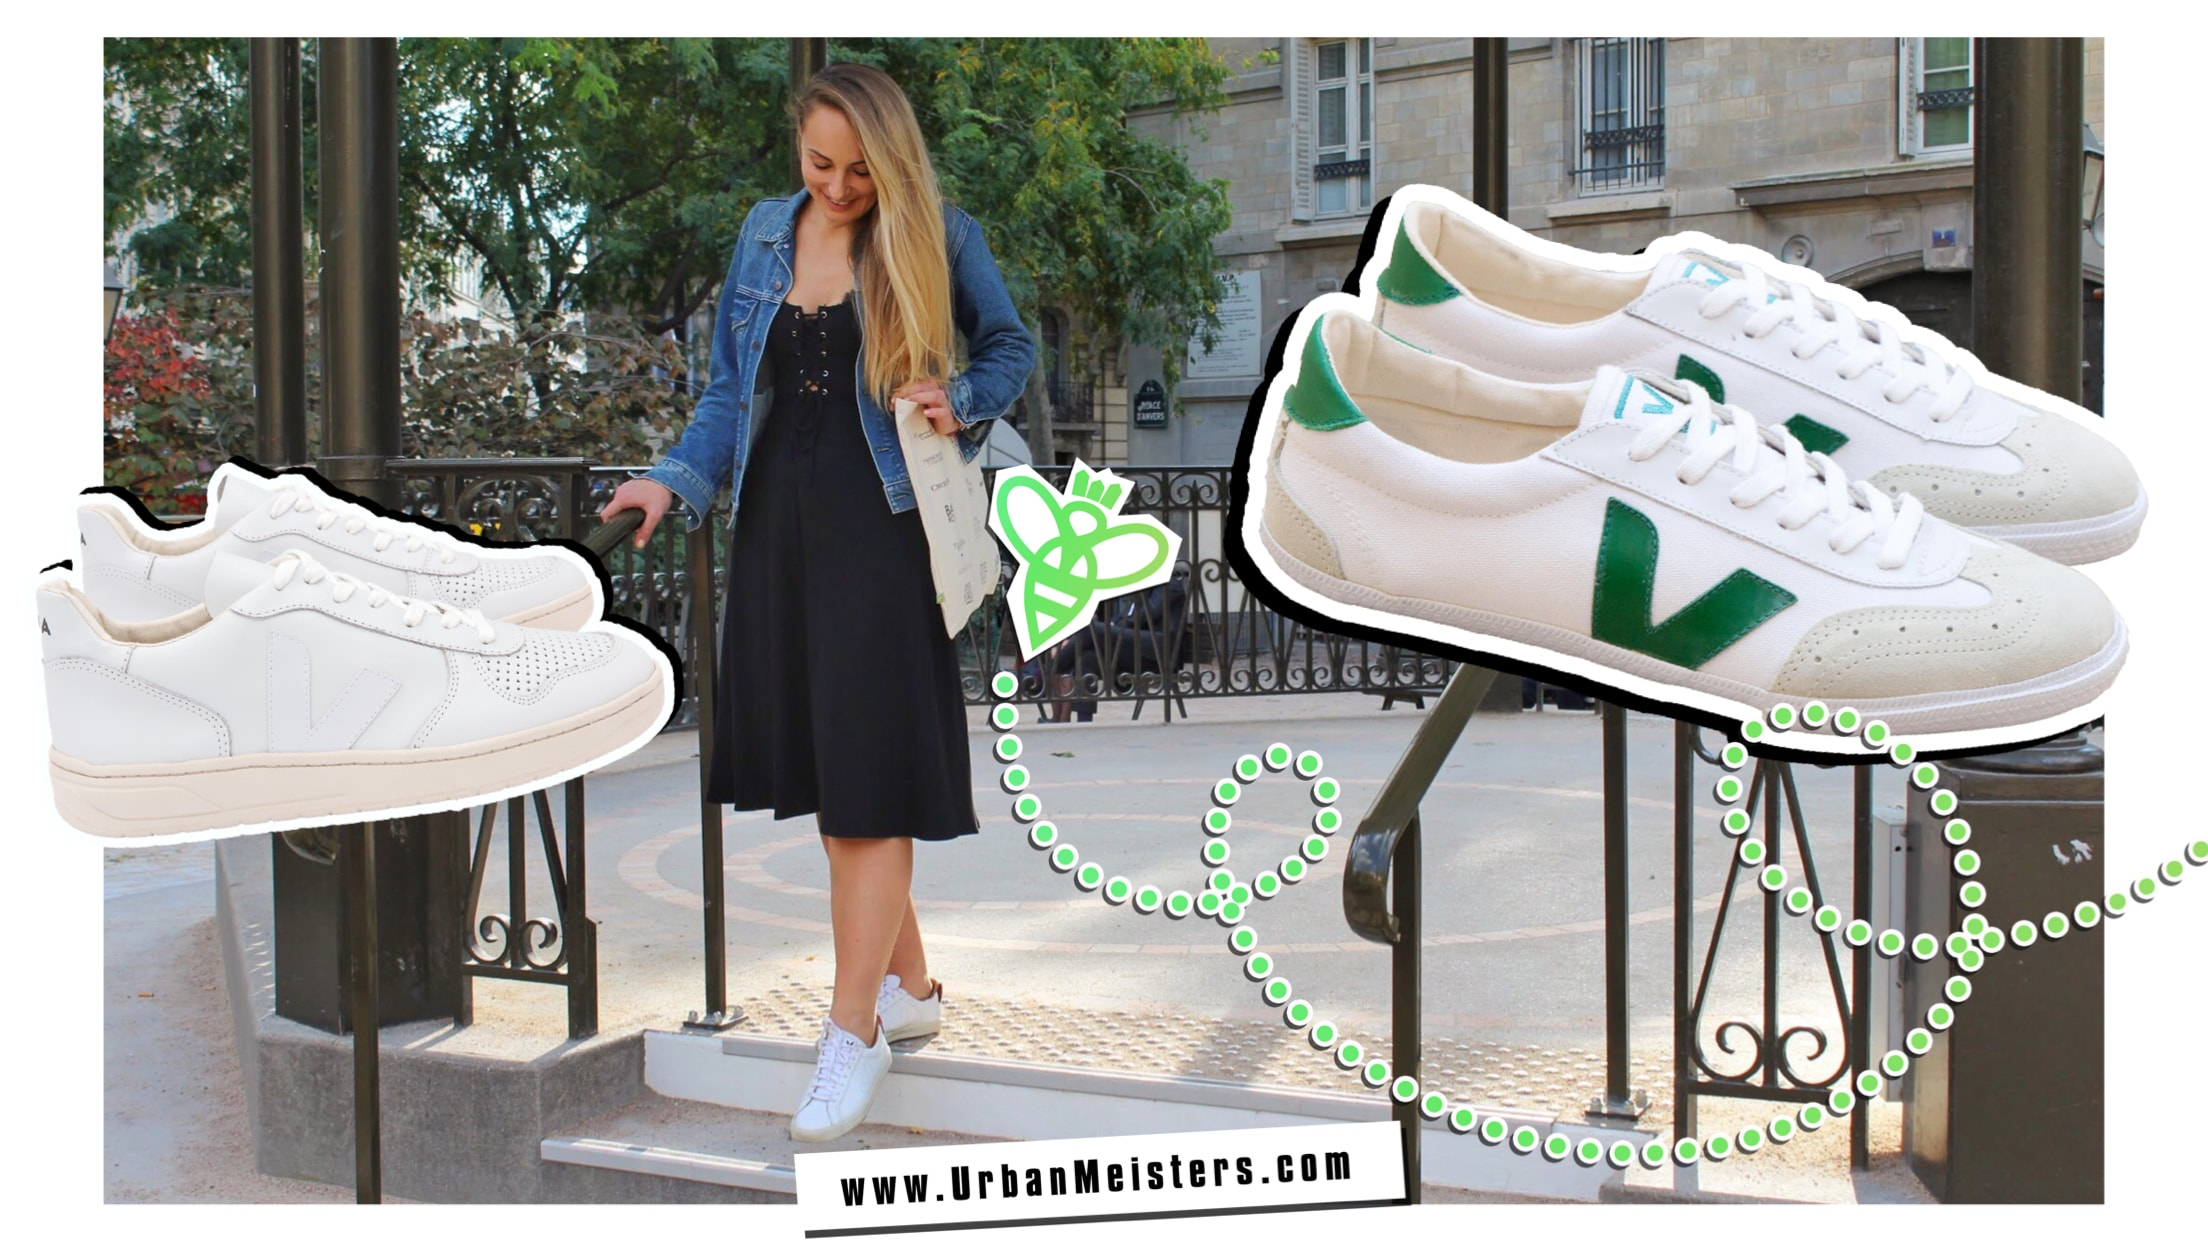 GREEN FASHION] Score high on style with luxe sustainable